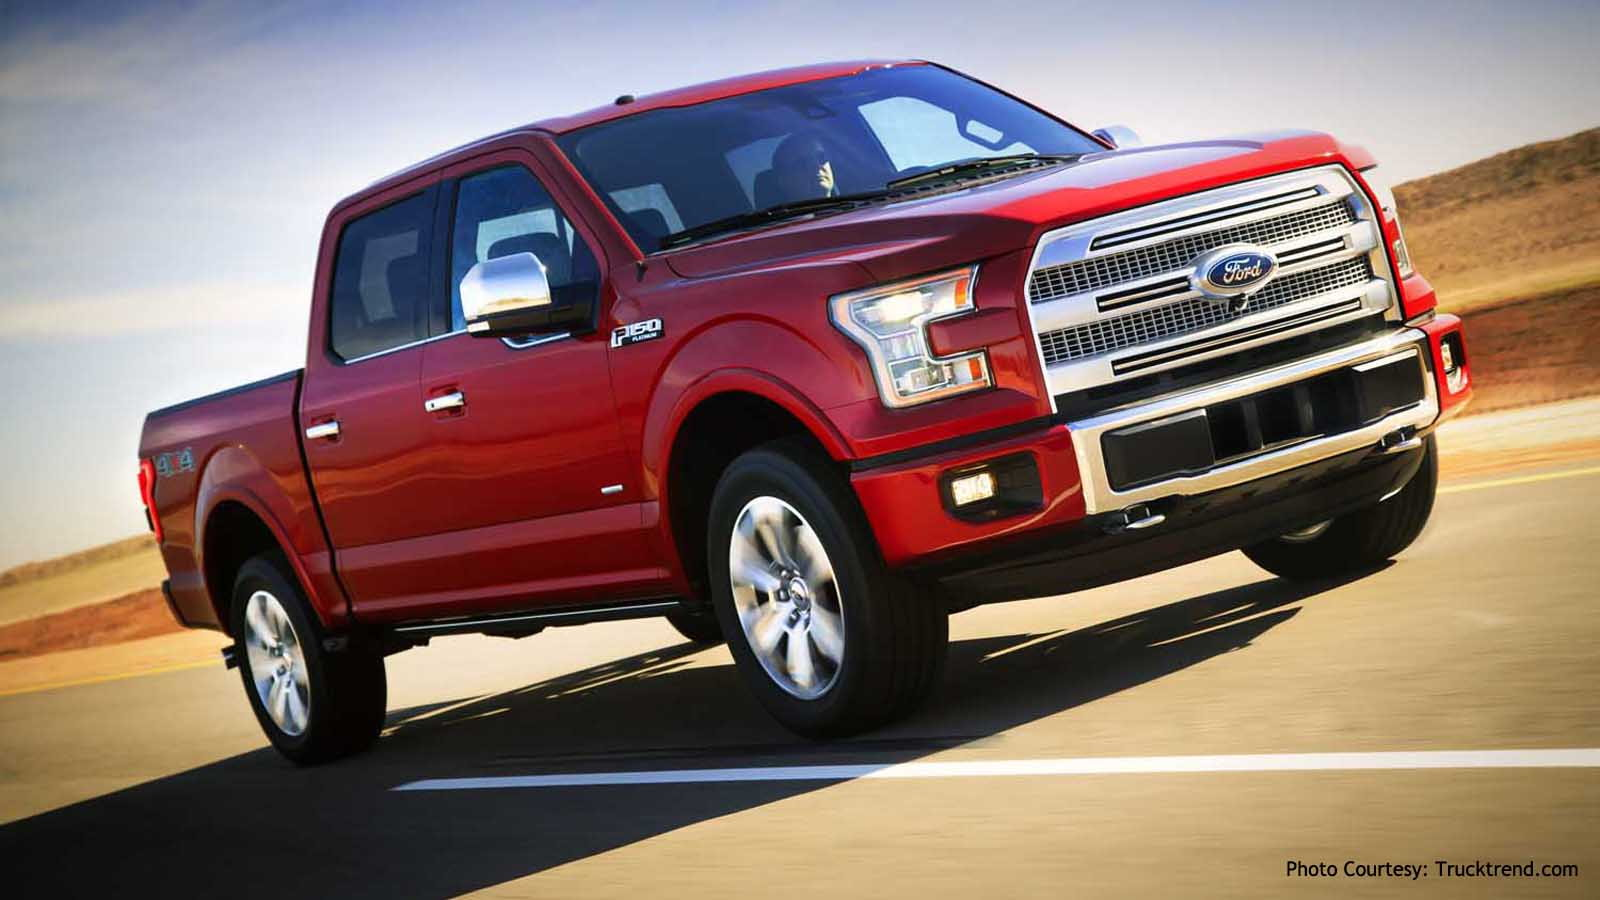 Ford F150 Best Selling Truck